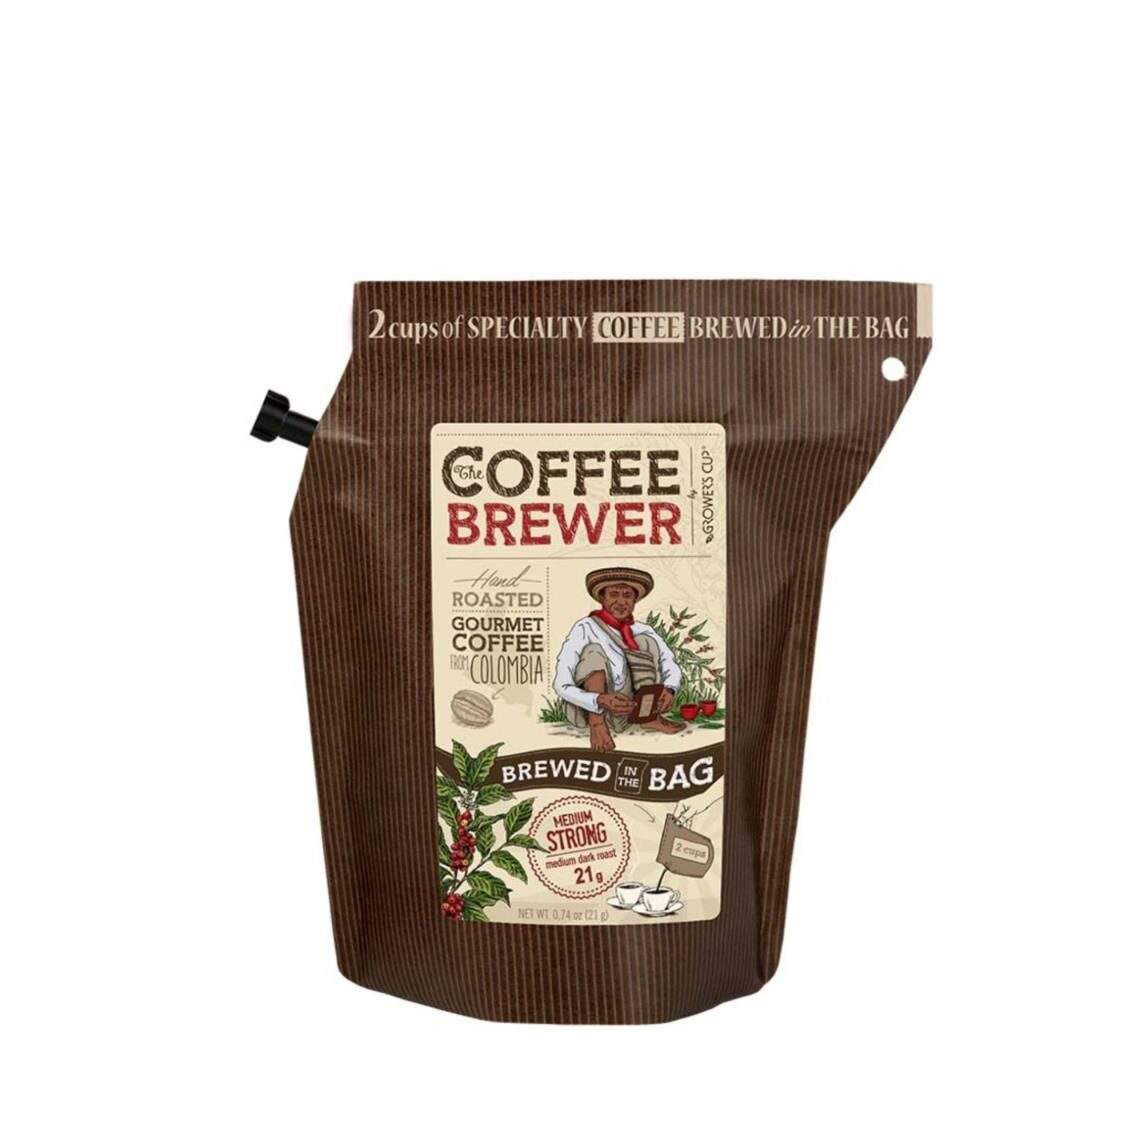 Coffee Brewer Coffee - Colombia 21g